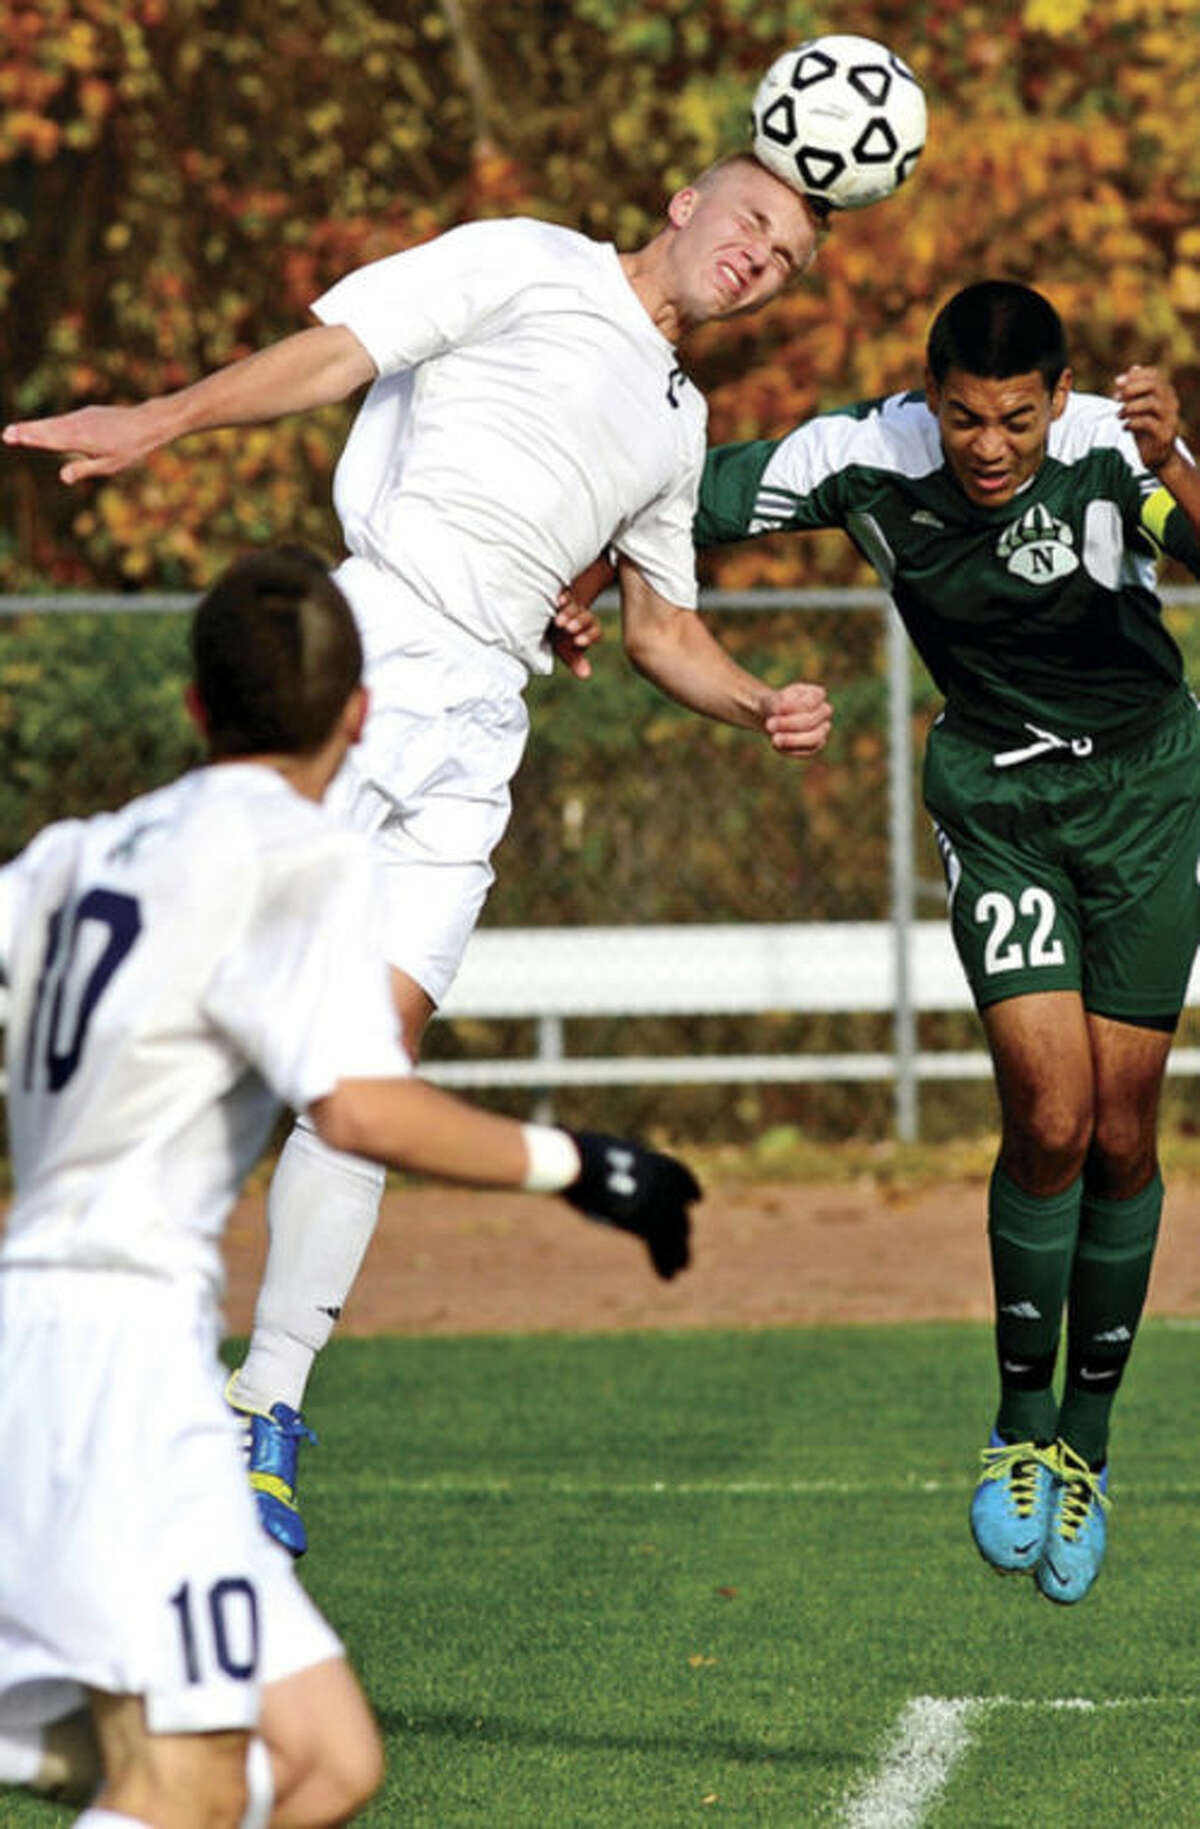 Hour photo/Erik Trautmann Andrew Puchala of Staples outjumps Norwalk's Sergio Mandujano for a header during Tuesday's Class LL state tournament game in Westport. Diego Alanis (10) of Staples gets a close look at the play. The Wreckers advanced with a 1-0 victory over the visiting Bears, the defending Class LL champs.